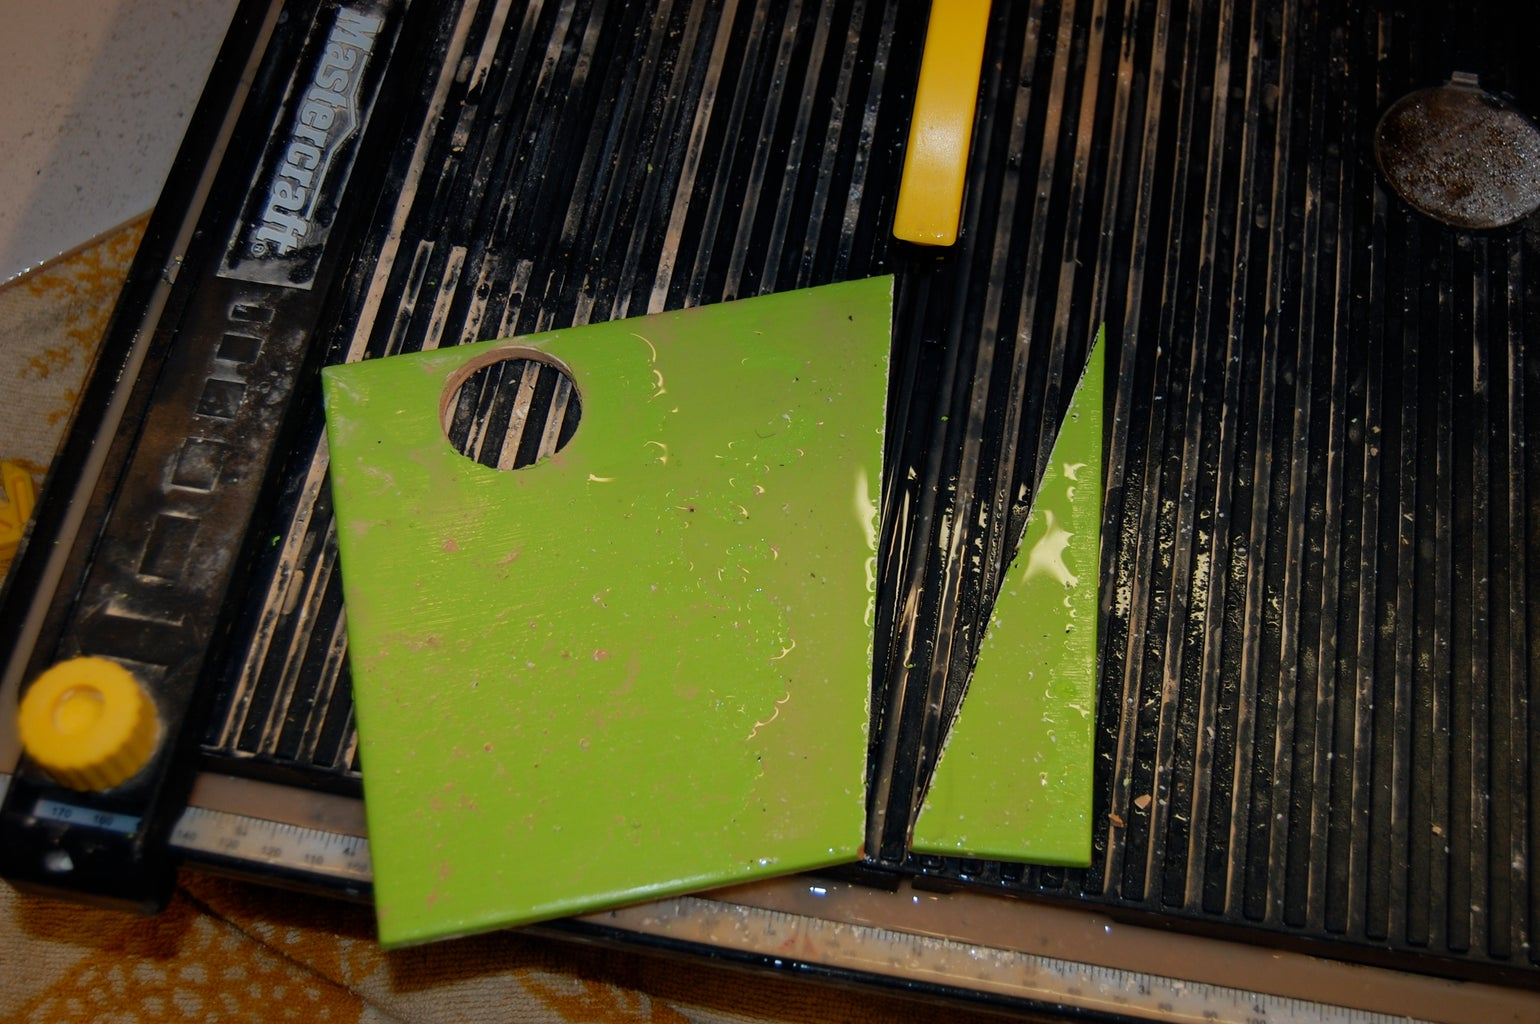 Tiling: Cutting and Drilling Tiles